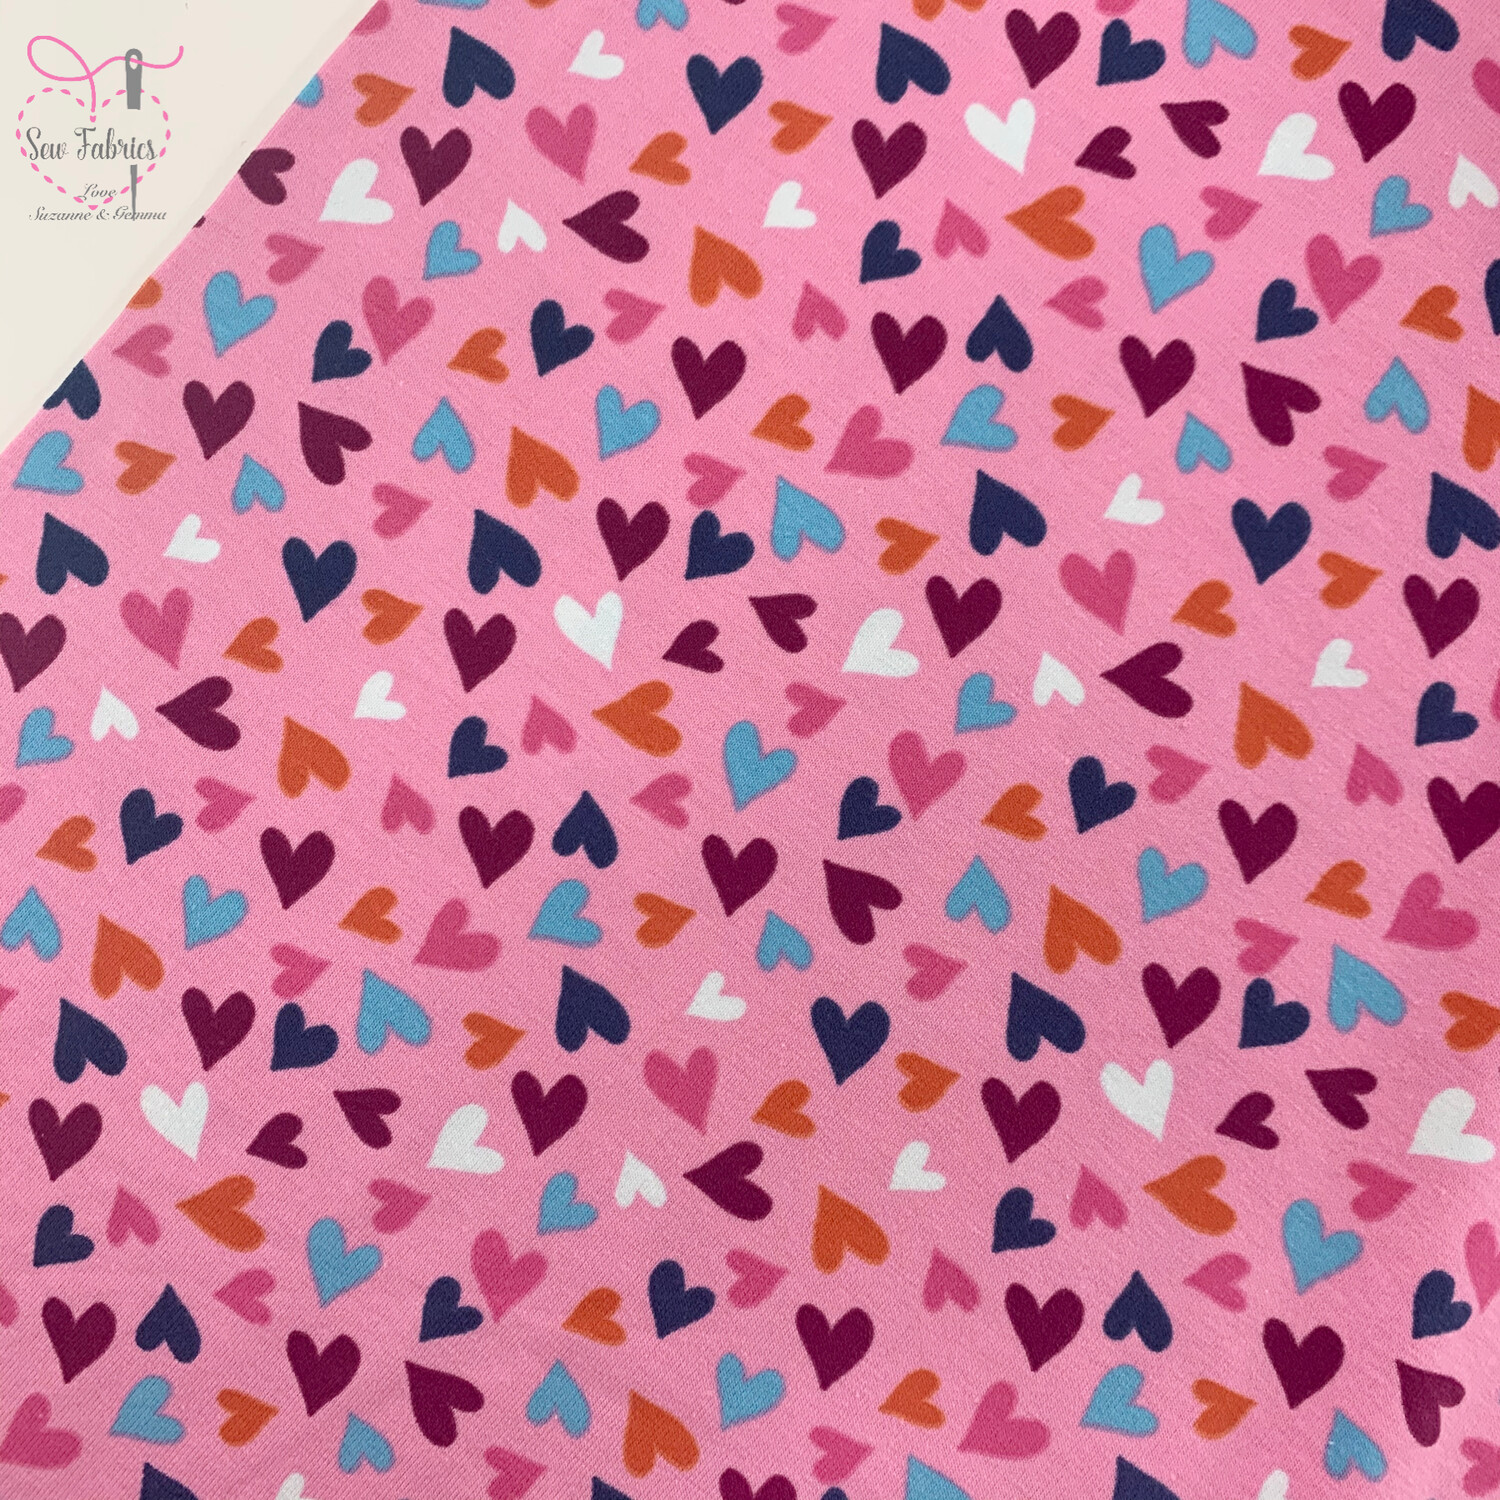 Light Pink Hearts Printed Cotton Elastane Tricot Jersey Fabric, Dress, Children's